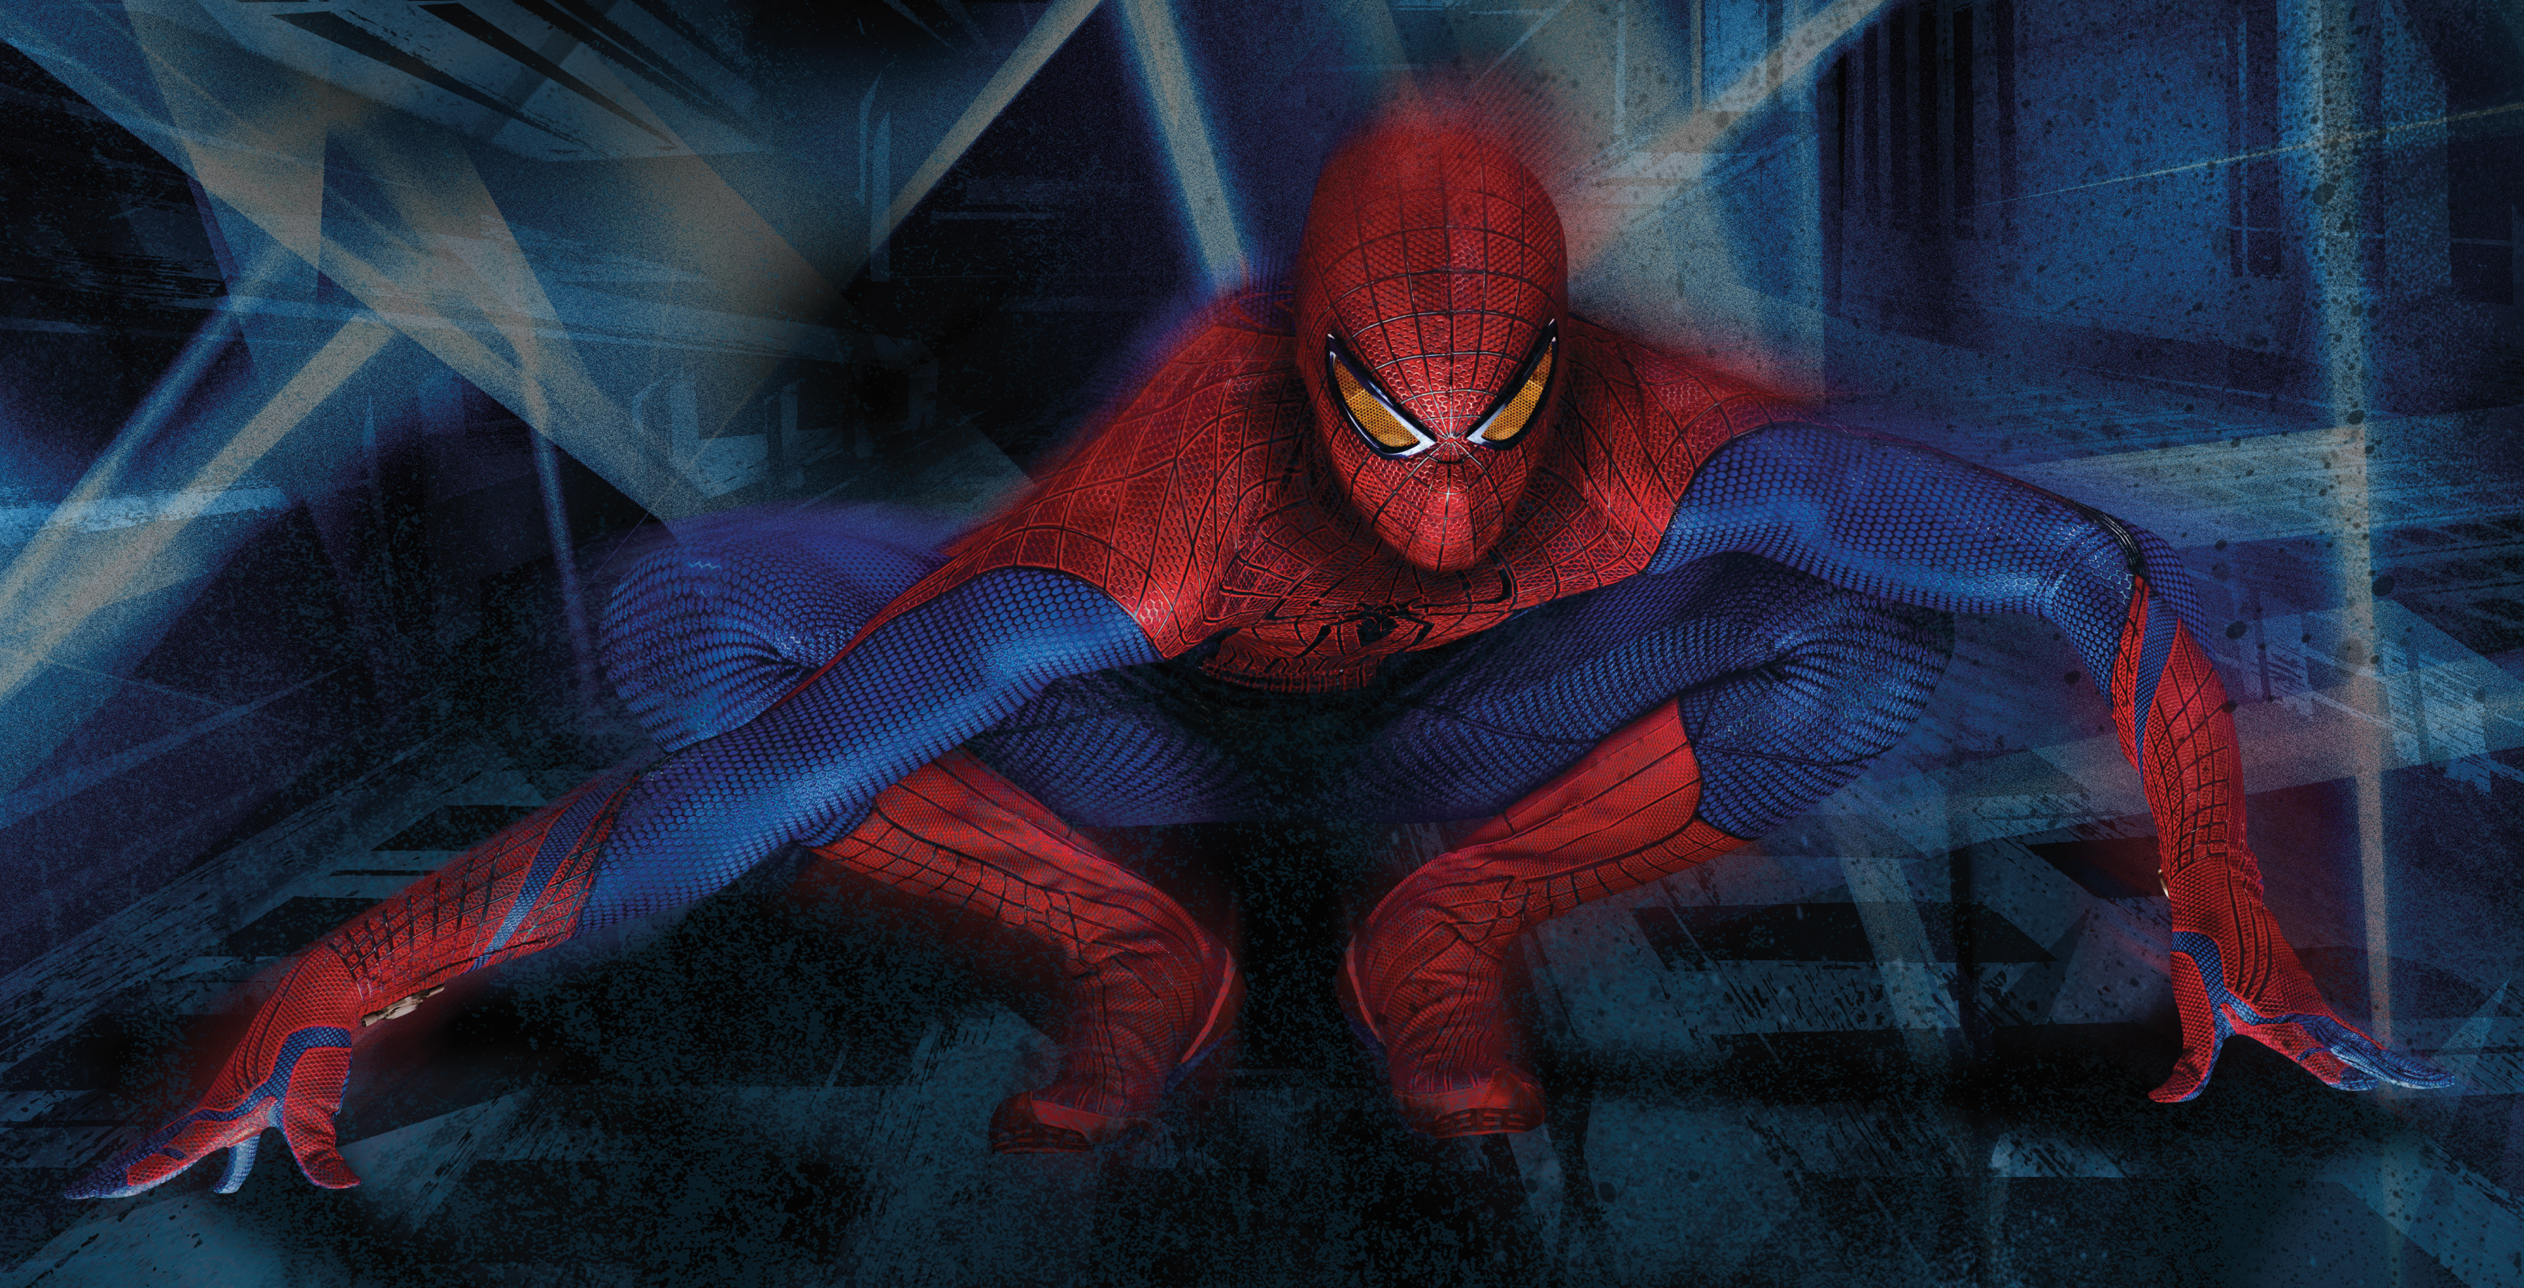 The Amazing Spider Man Hd Wallpaper Background Image 2524x1288